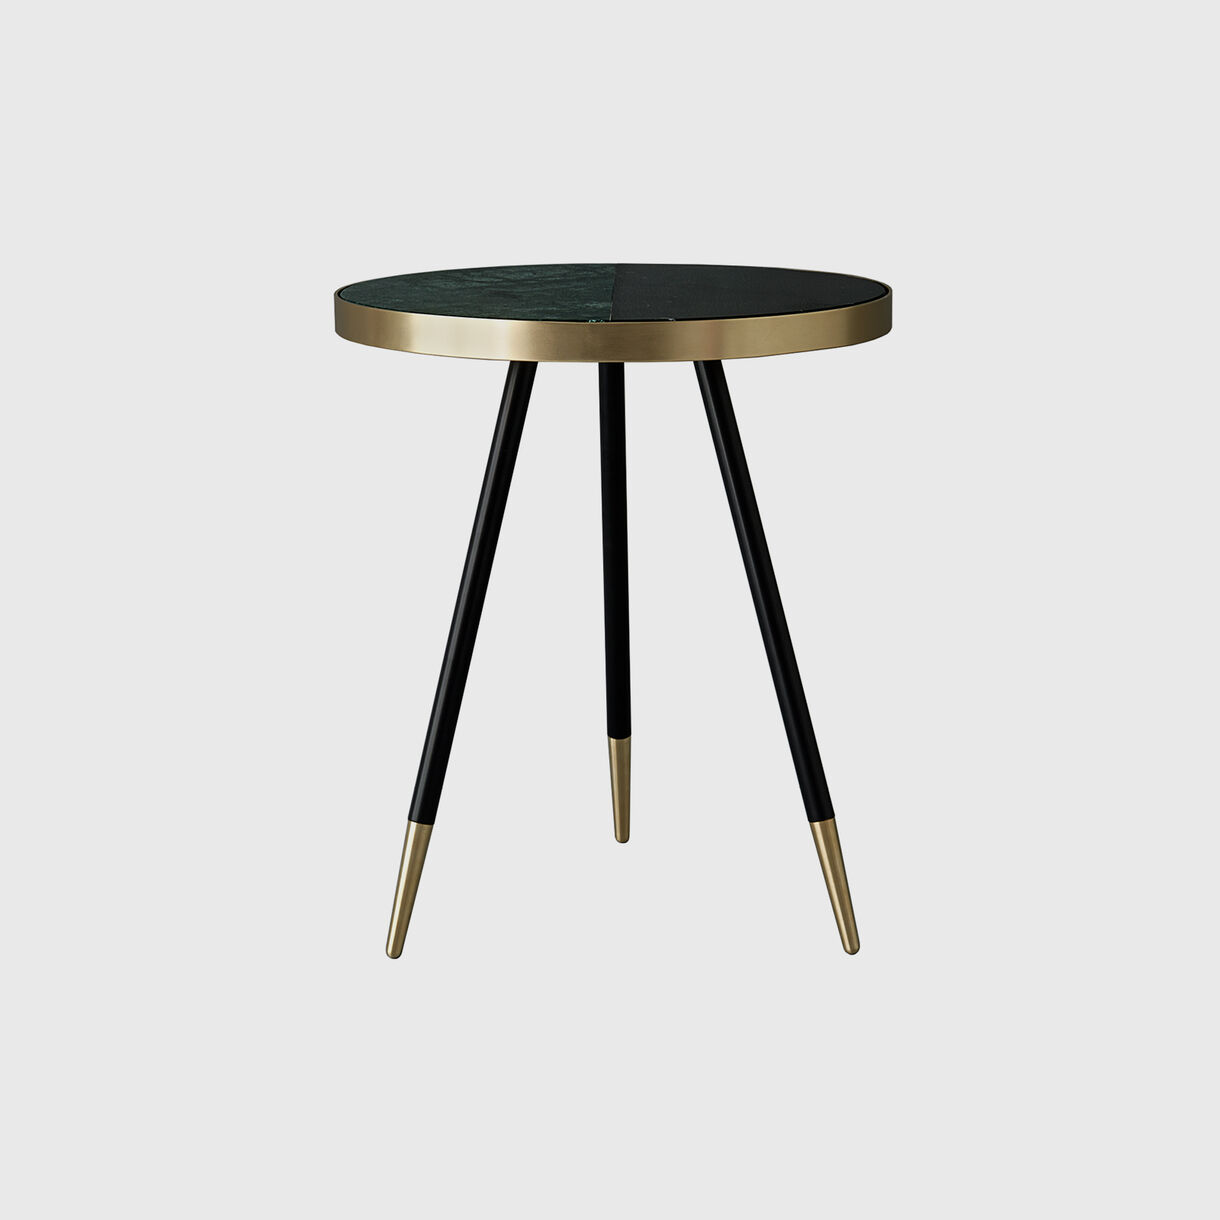 Band Two-Tone Side Table, Verde & Nero